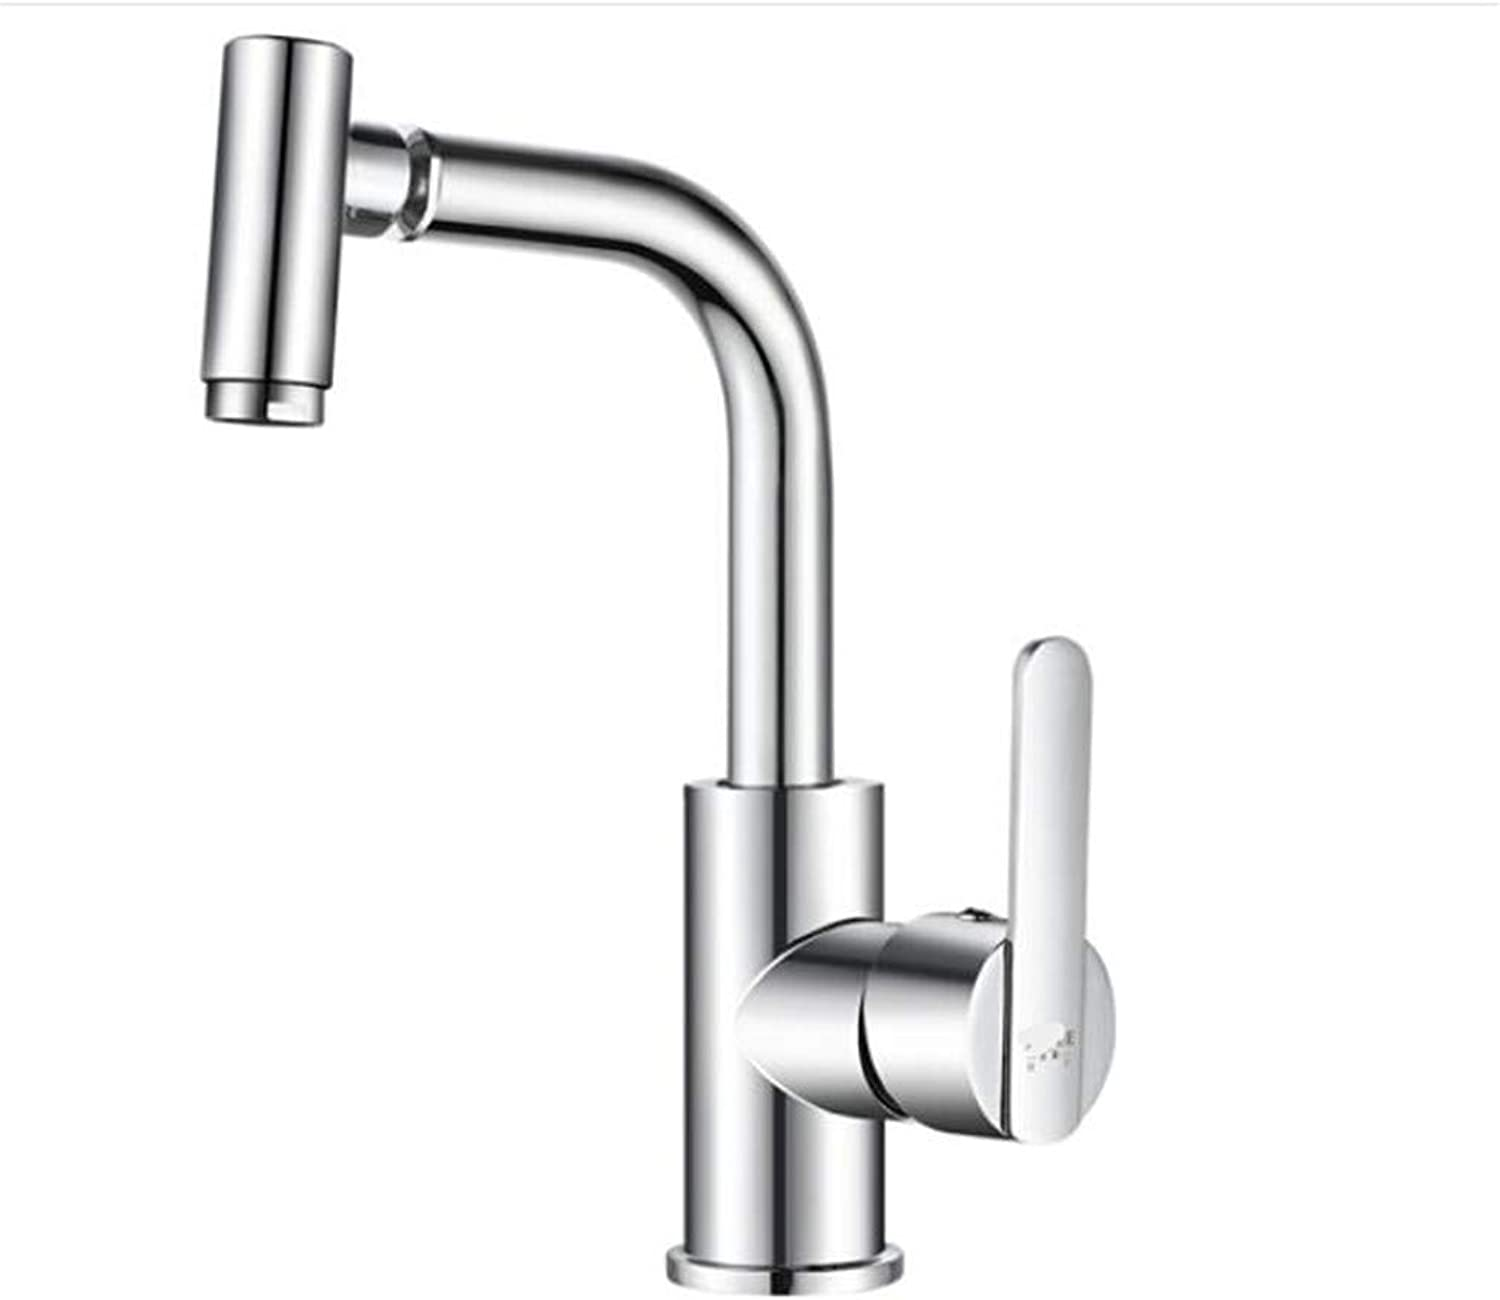 Bathroom Sink Basin Lever Mixer Tap Face Basin Cold and Hot Water Faucet 360 Degree redary Single-Hole Face Basin Faucet